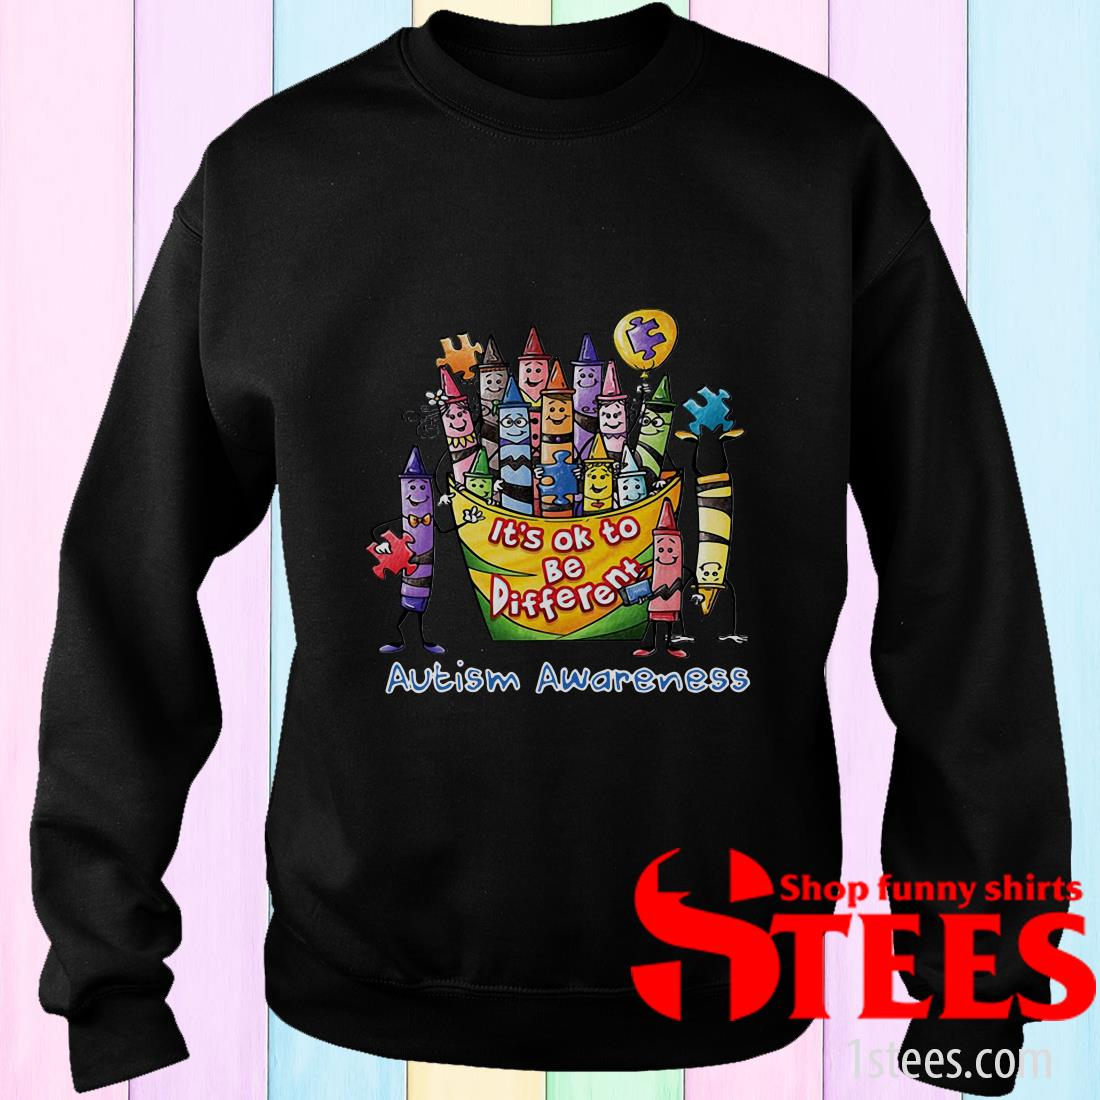 It's Ok To Be Diferent Autism Awareness Sweater